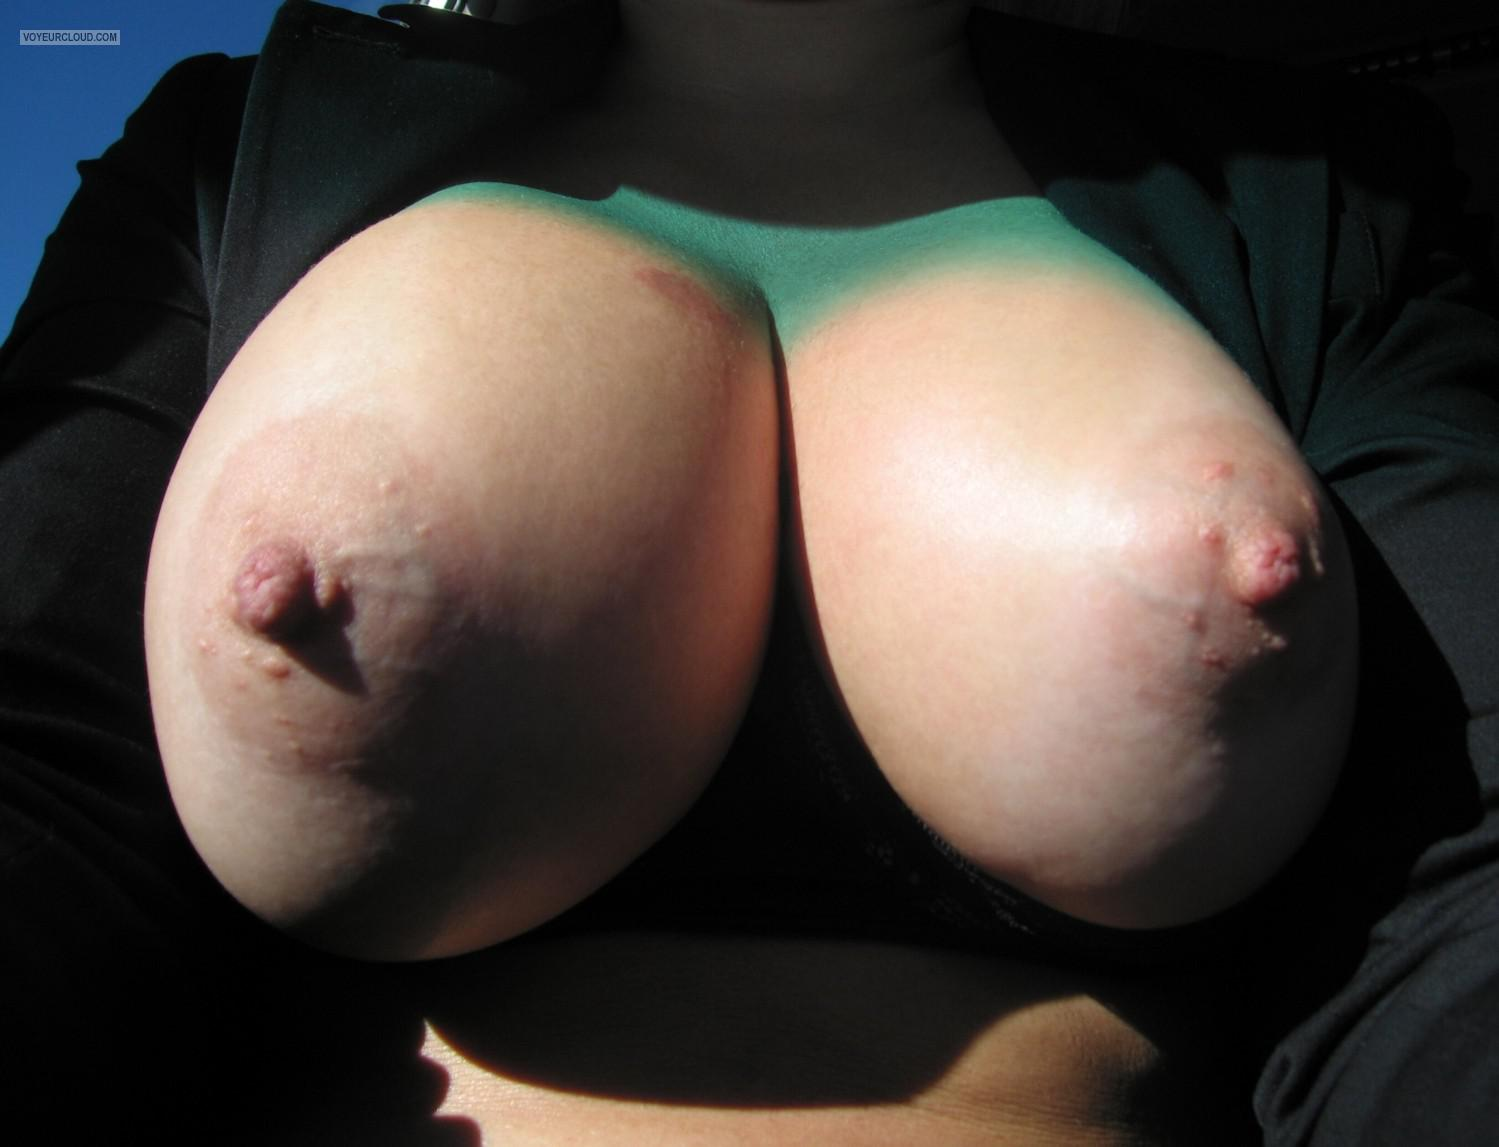 My Big Tits Selfie by Faans Flasher